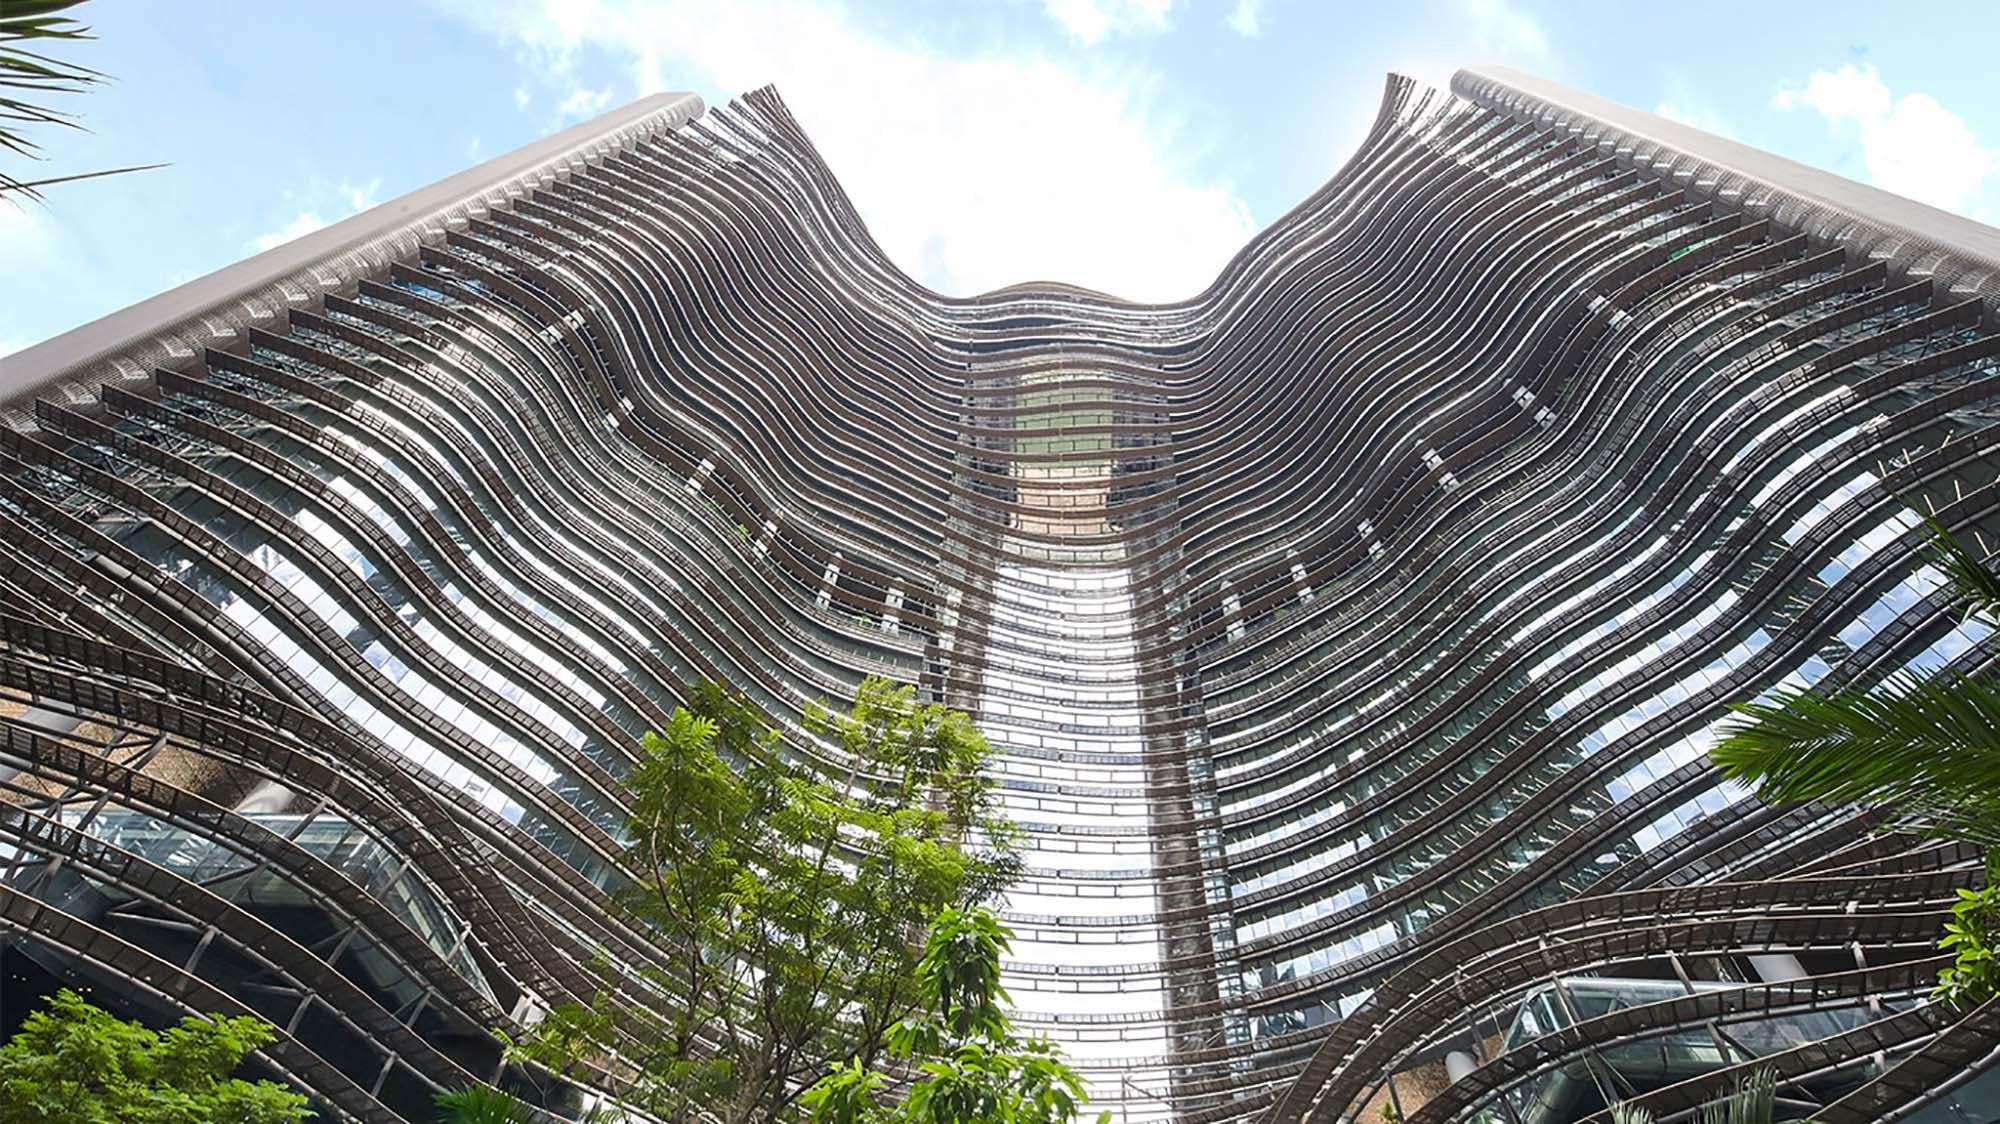 Marina One Residences towering from below